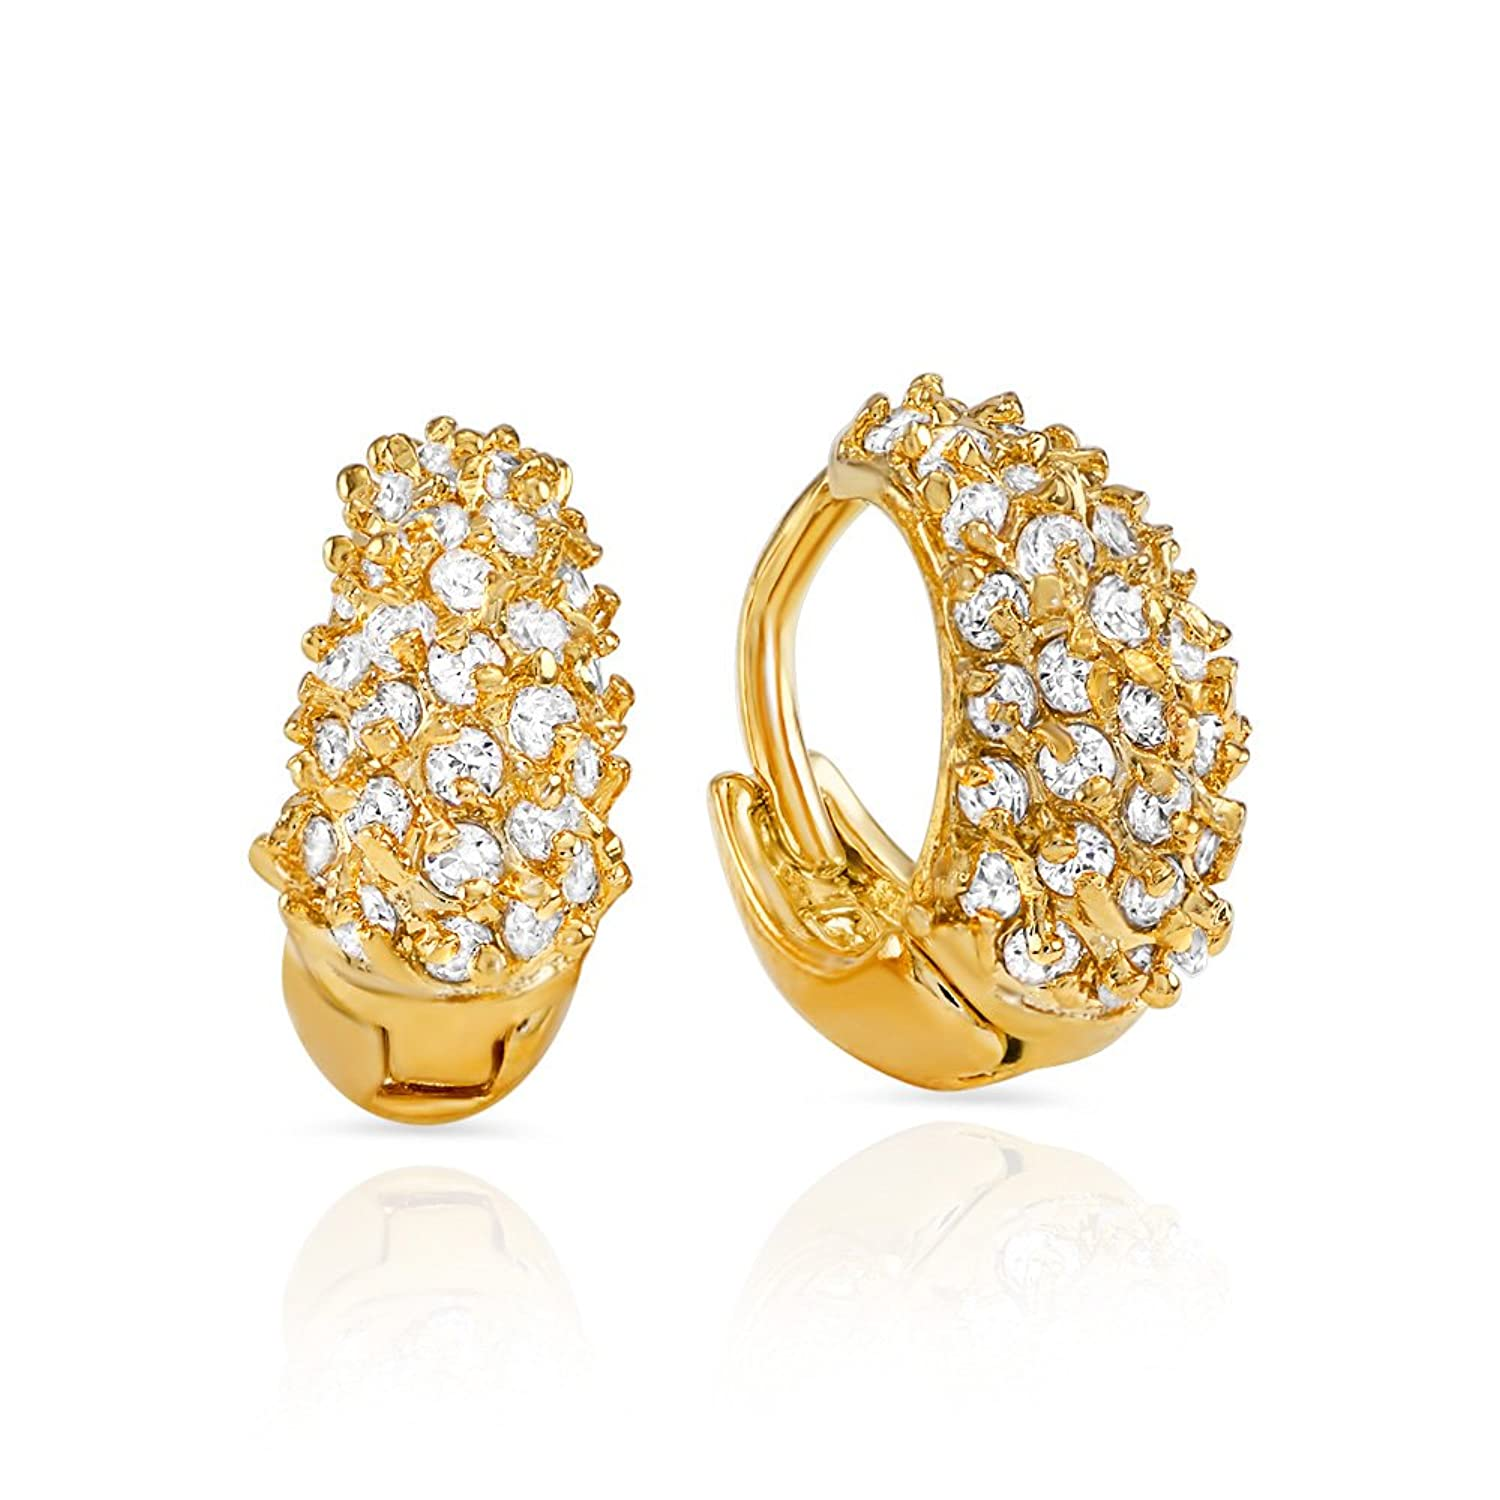 orra earring jewellery phalak gold earrings chandelier designs find latest a for women